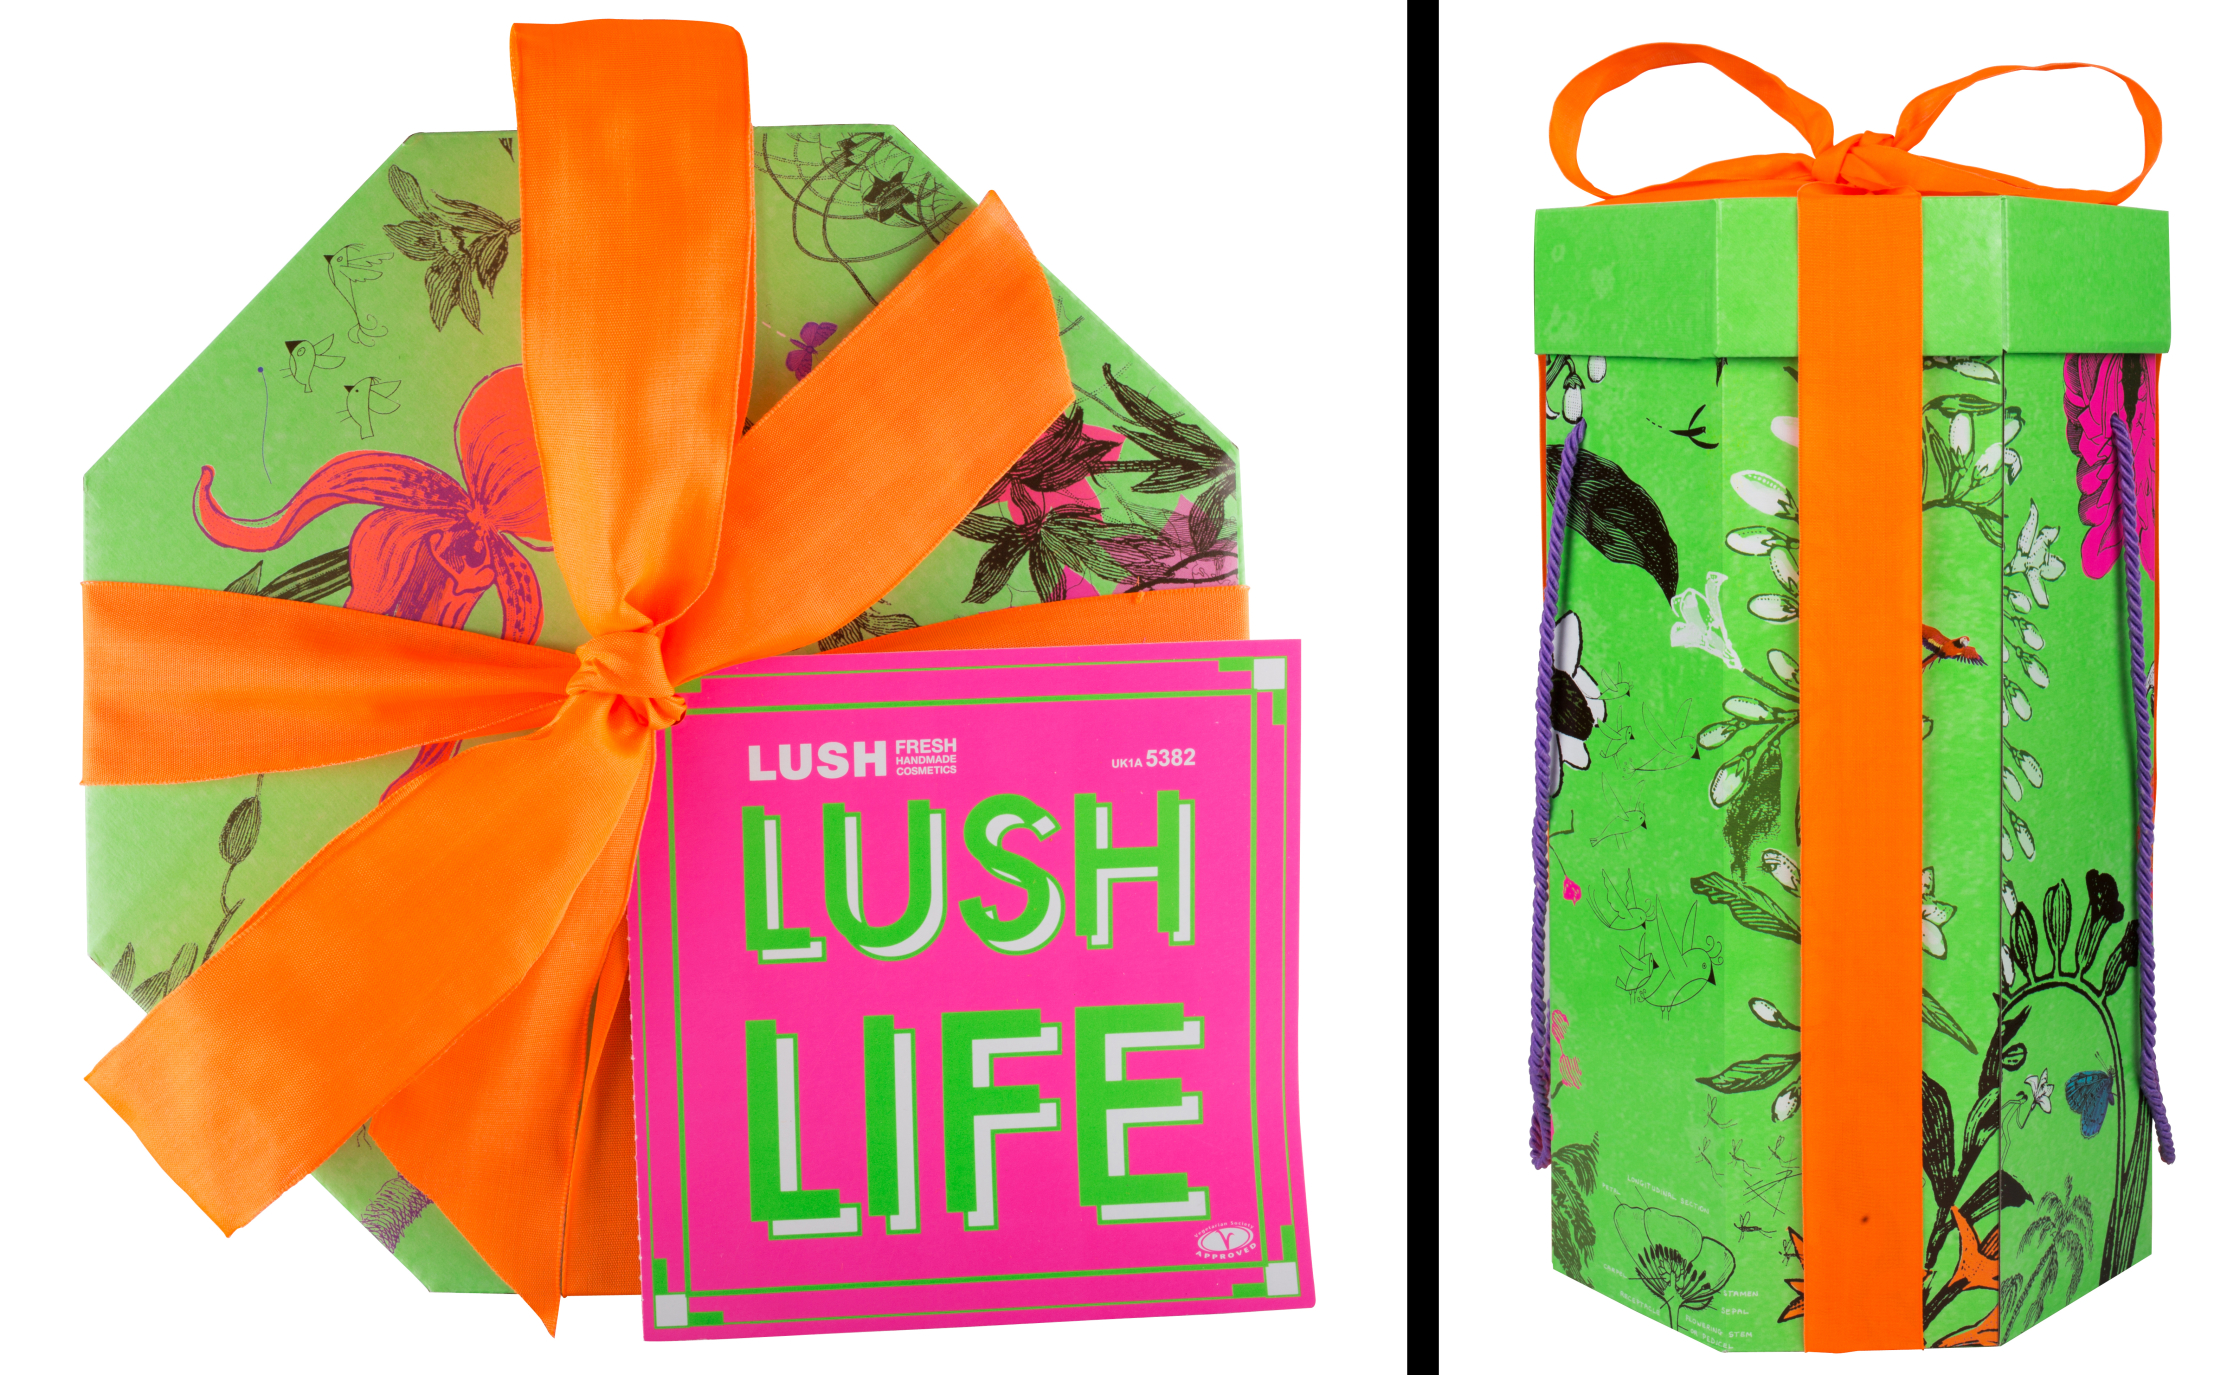 LUSH cosmetics Packaging